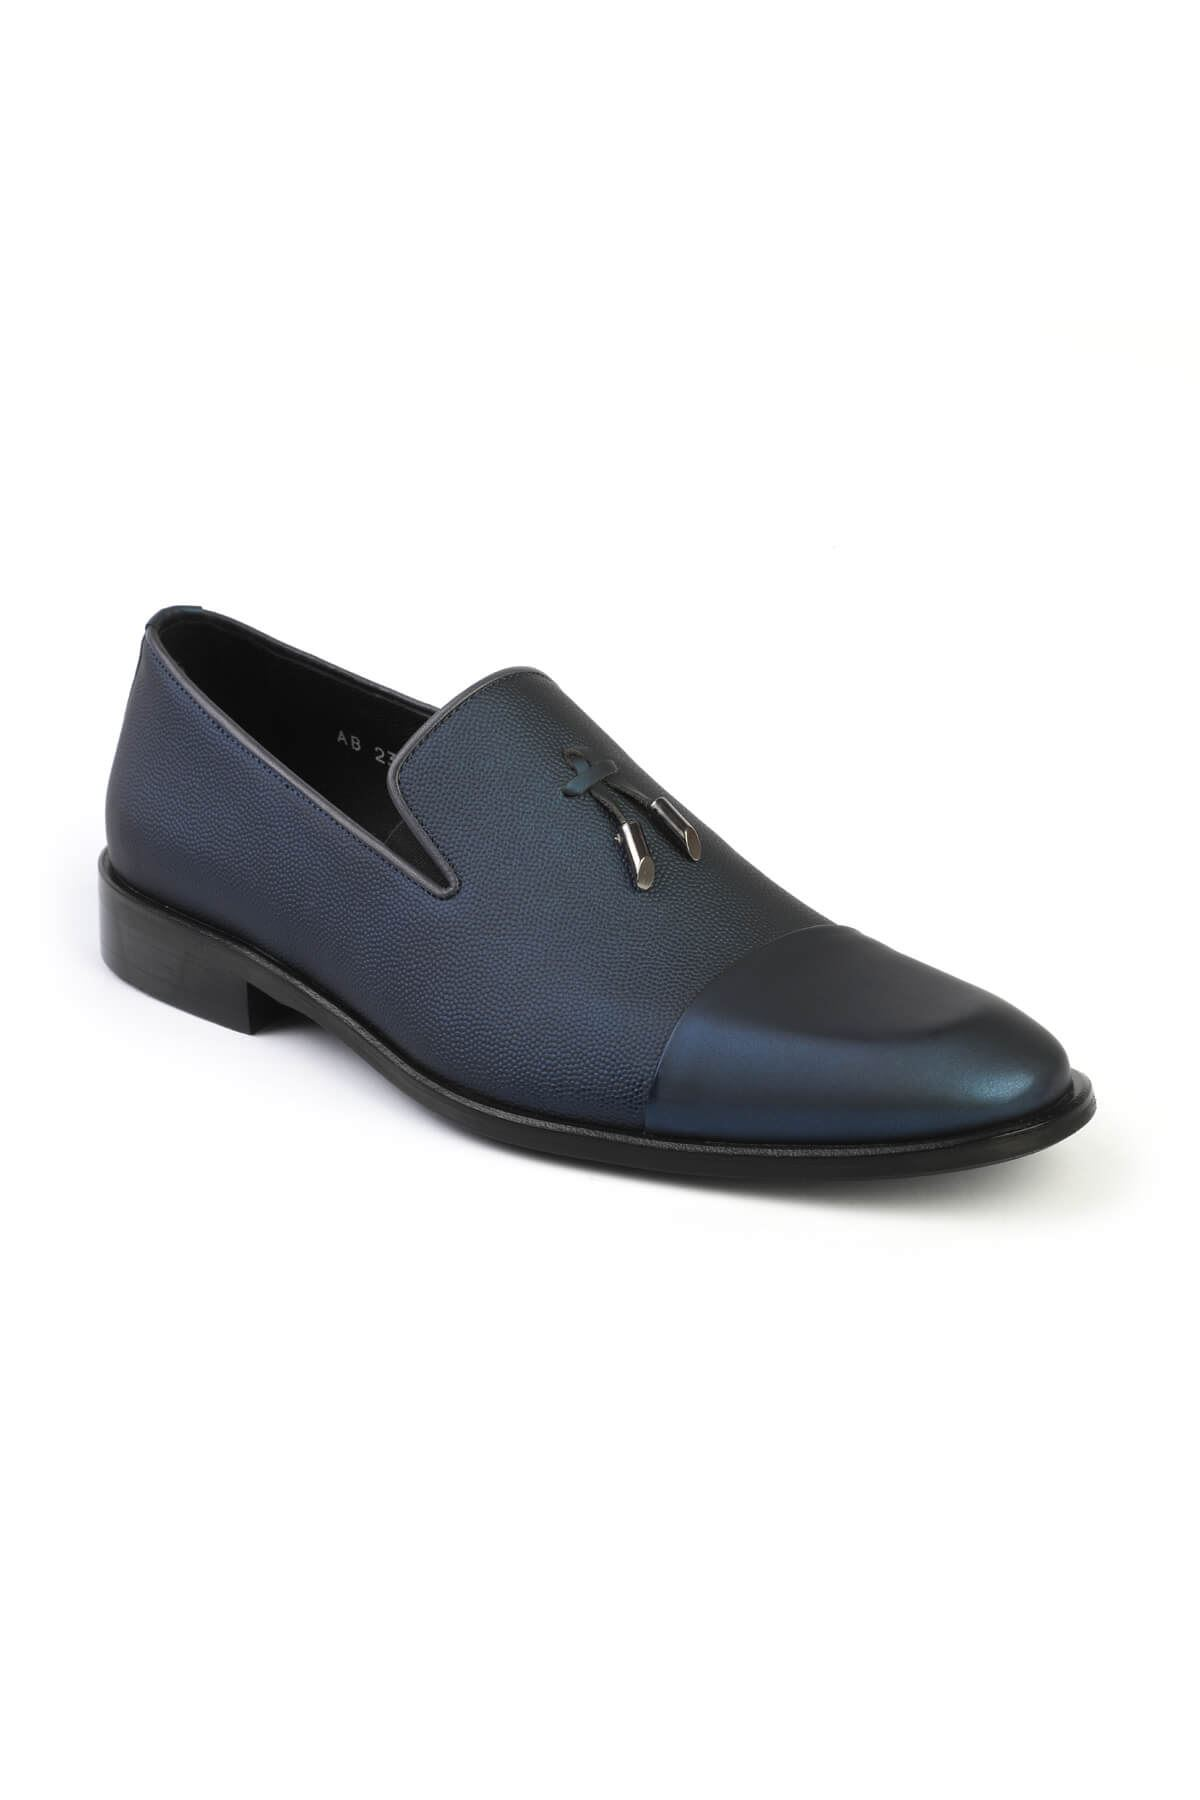 Libero 2385 Navy Blue Classic Shoes